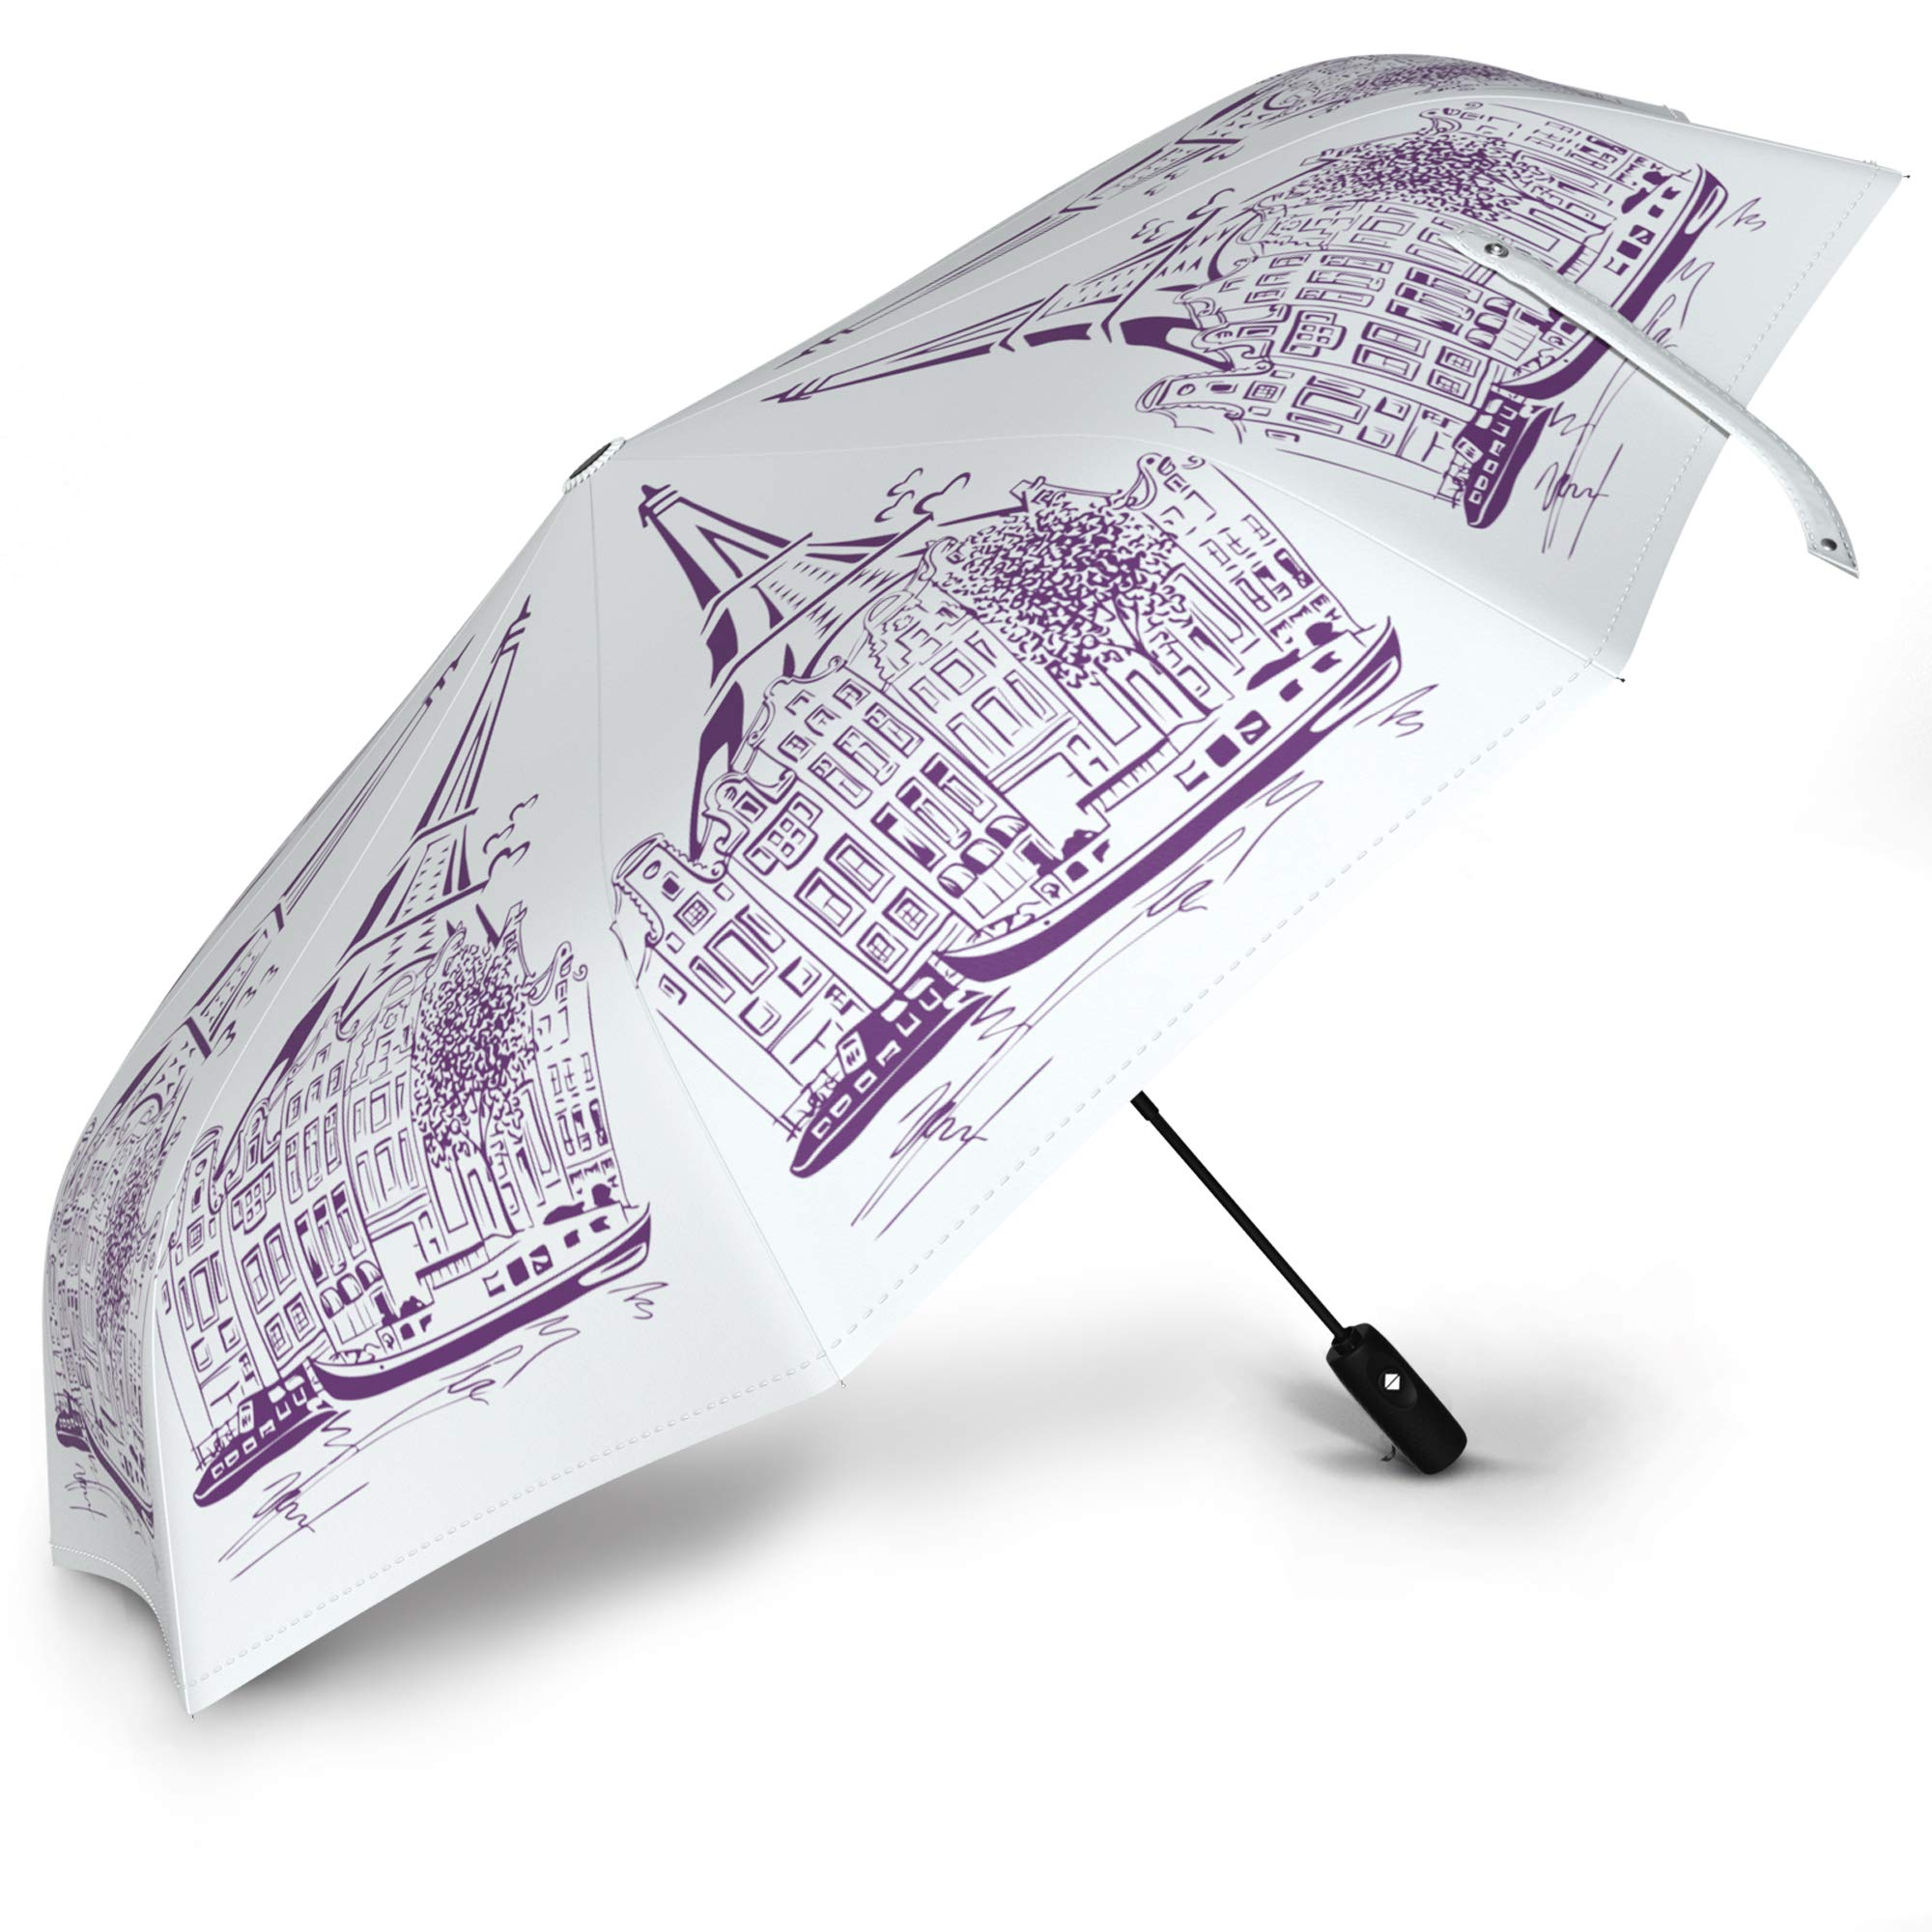 Amazing umbrella!!!